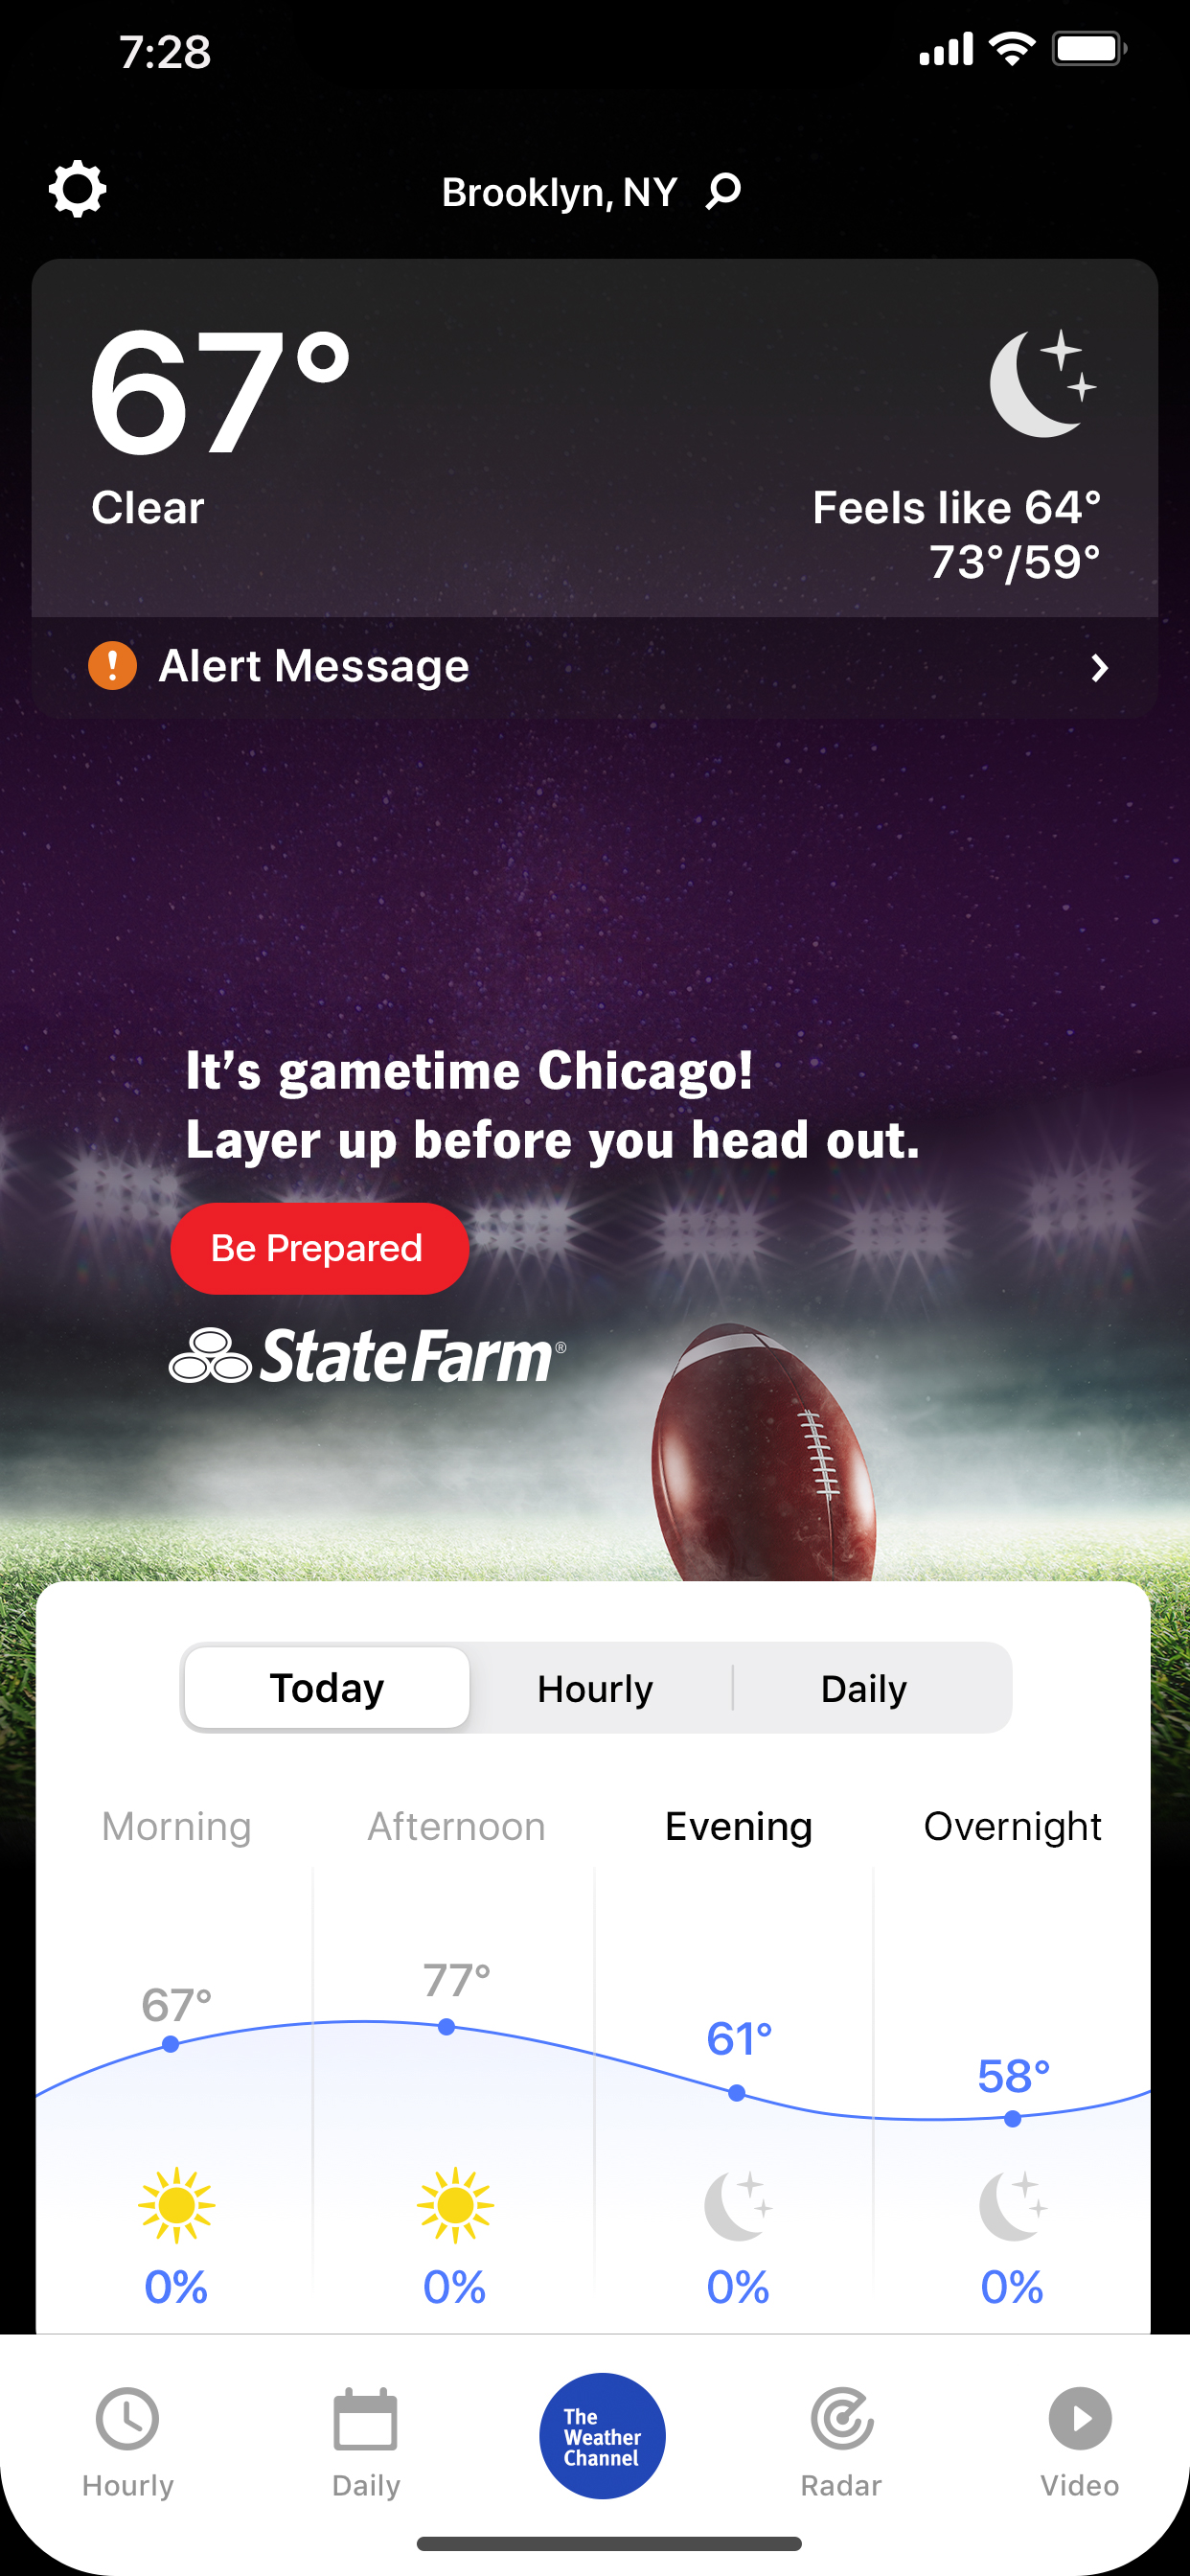 StateFarm_Mobile_App-IM_NextGen-Mock_Night